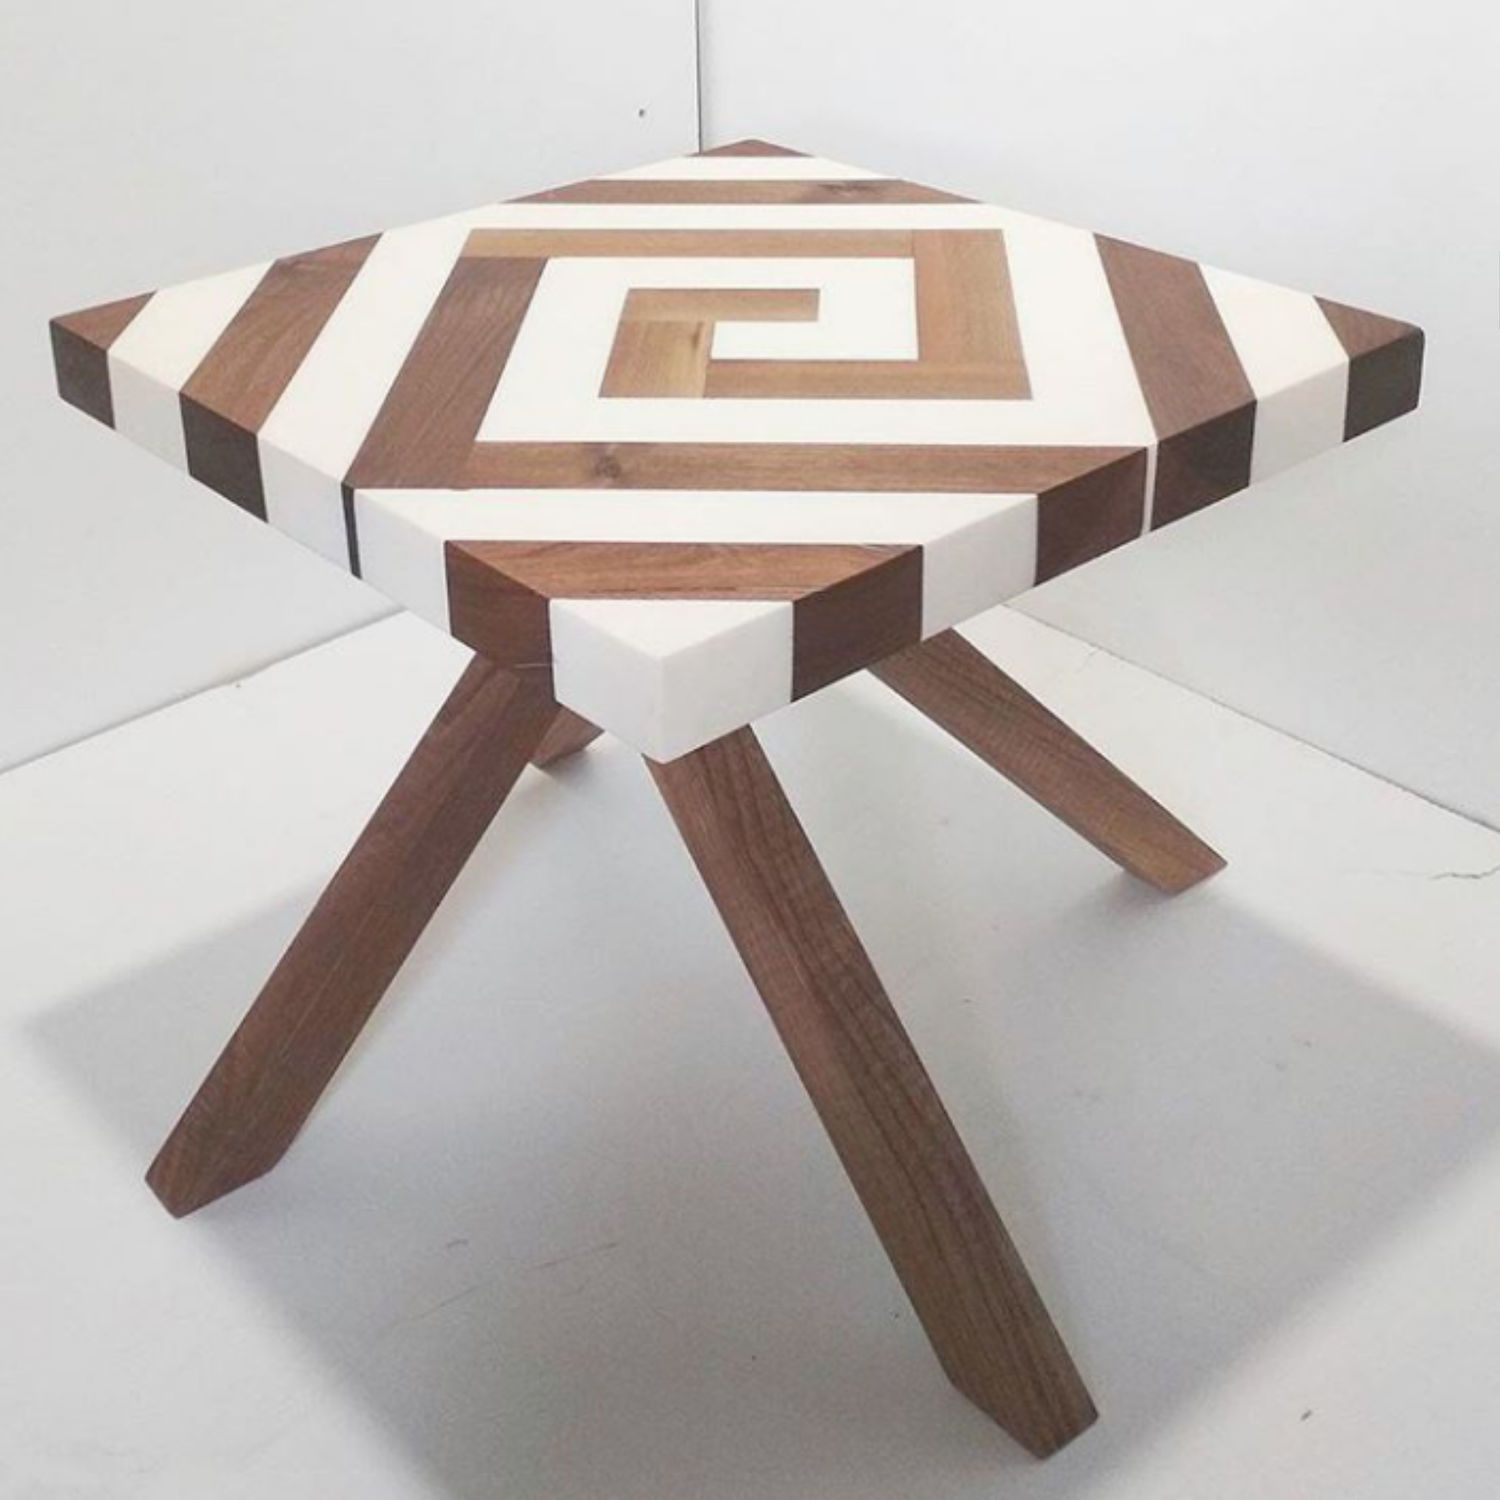 Pin On Wooden Table Design Coffee Table Dining Table